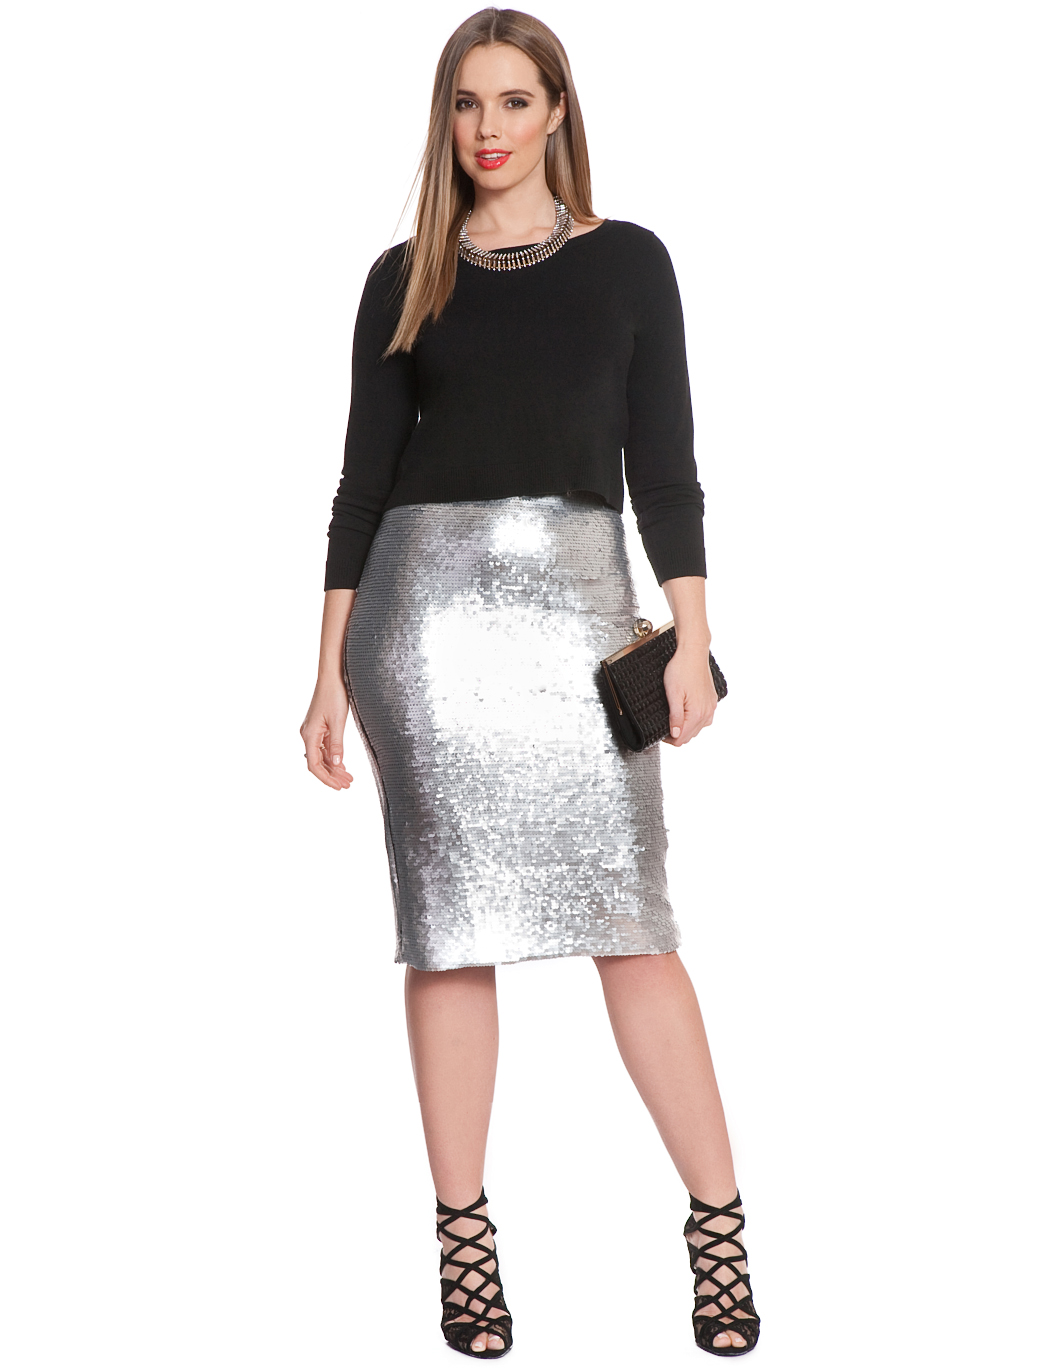 Studio Sequin Pencil Midi Skirt | Women's Plus Size Skirts | ELOQUII